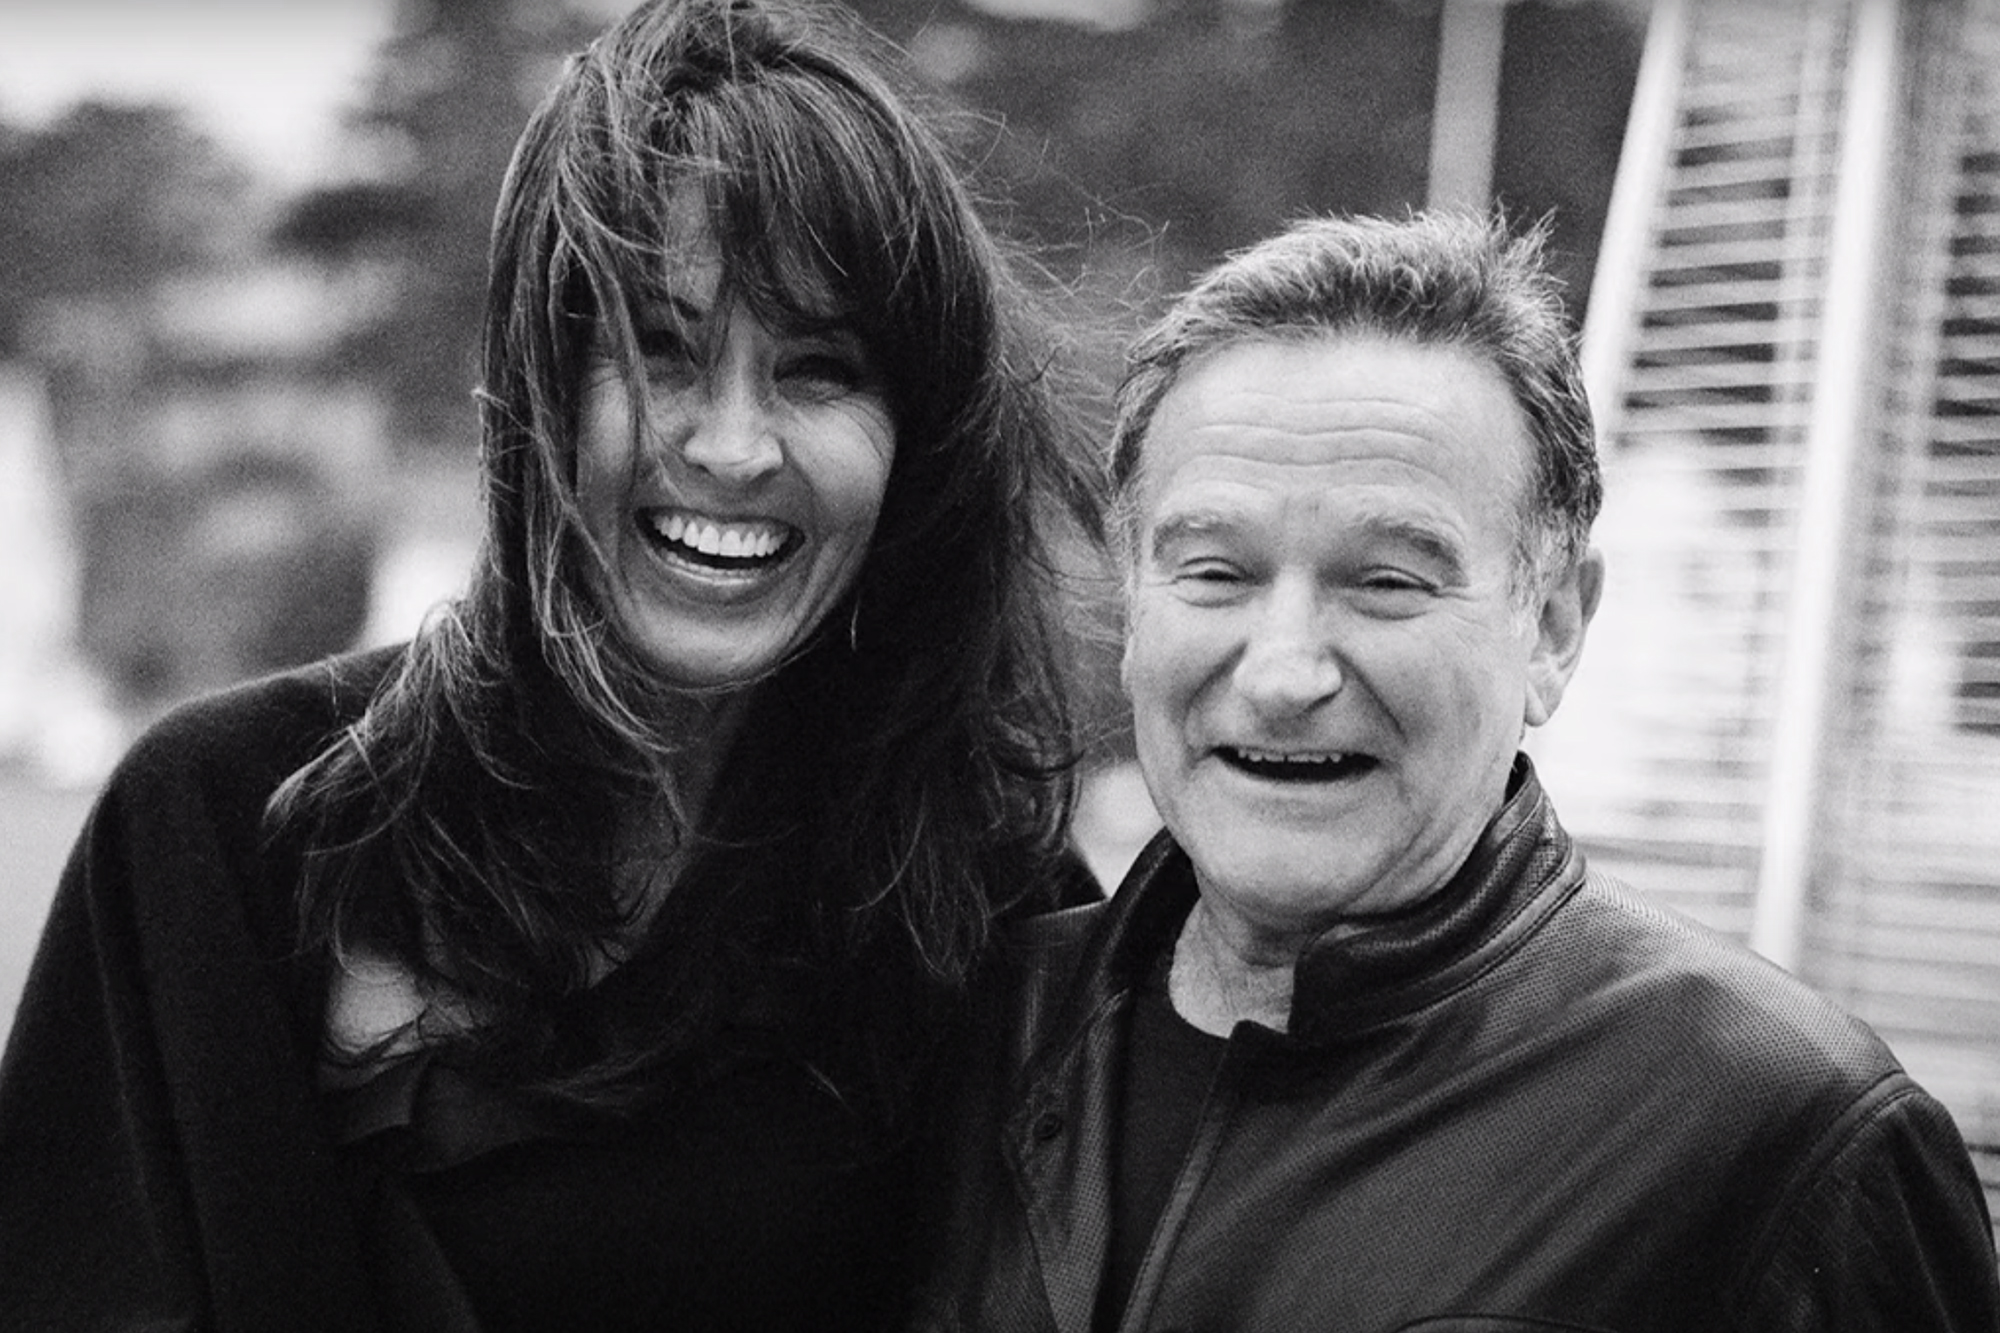 Viuda de Robin Williams rompe su silencio en documental 'Robin's Wish'